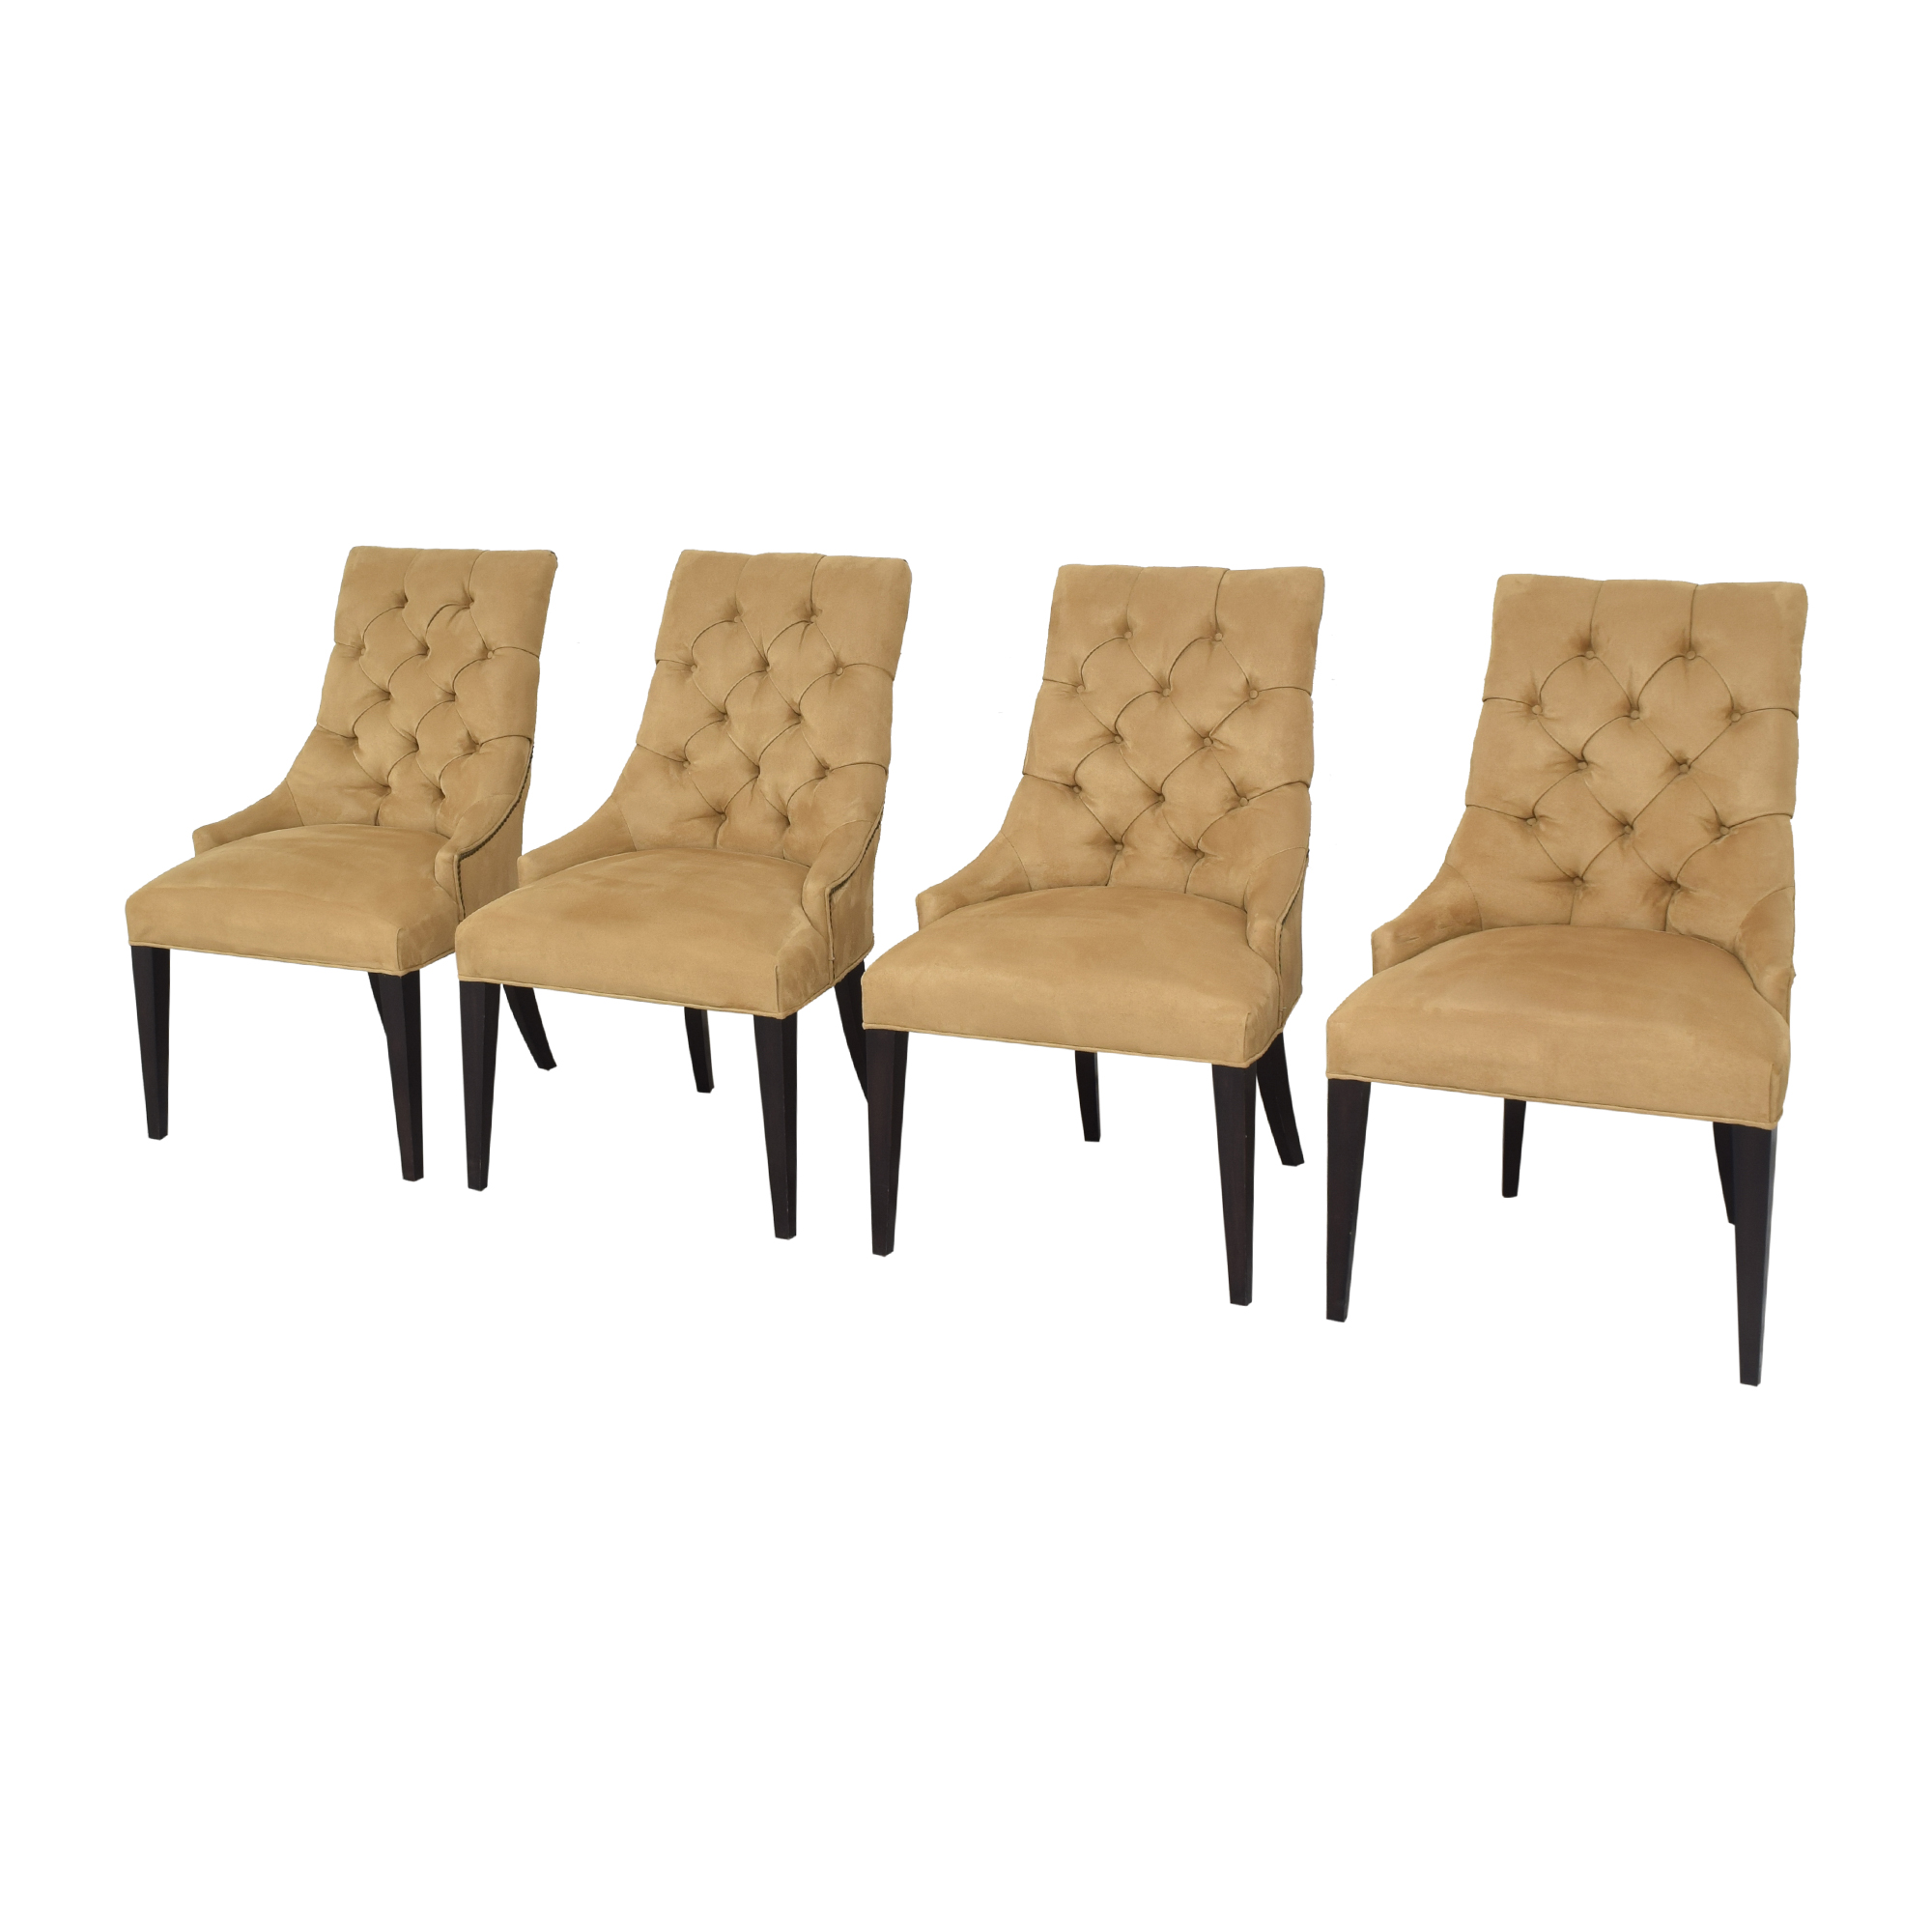 Restoration Hardware Restoration Hardware Martine Tufted Dining Armchairs tan and dark brown